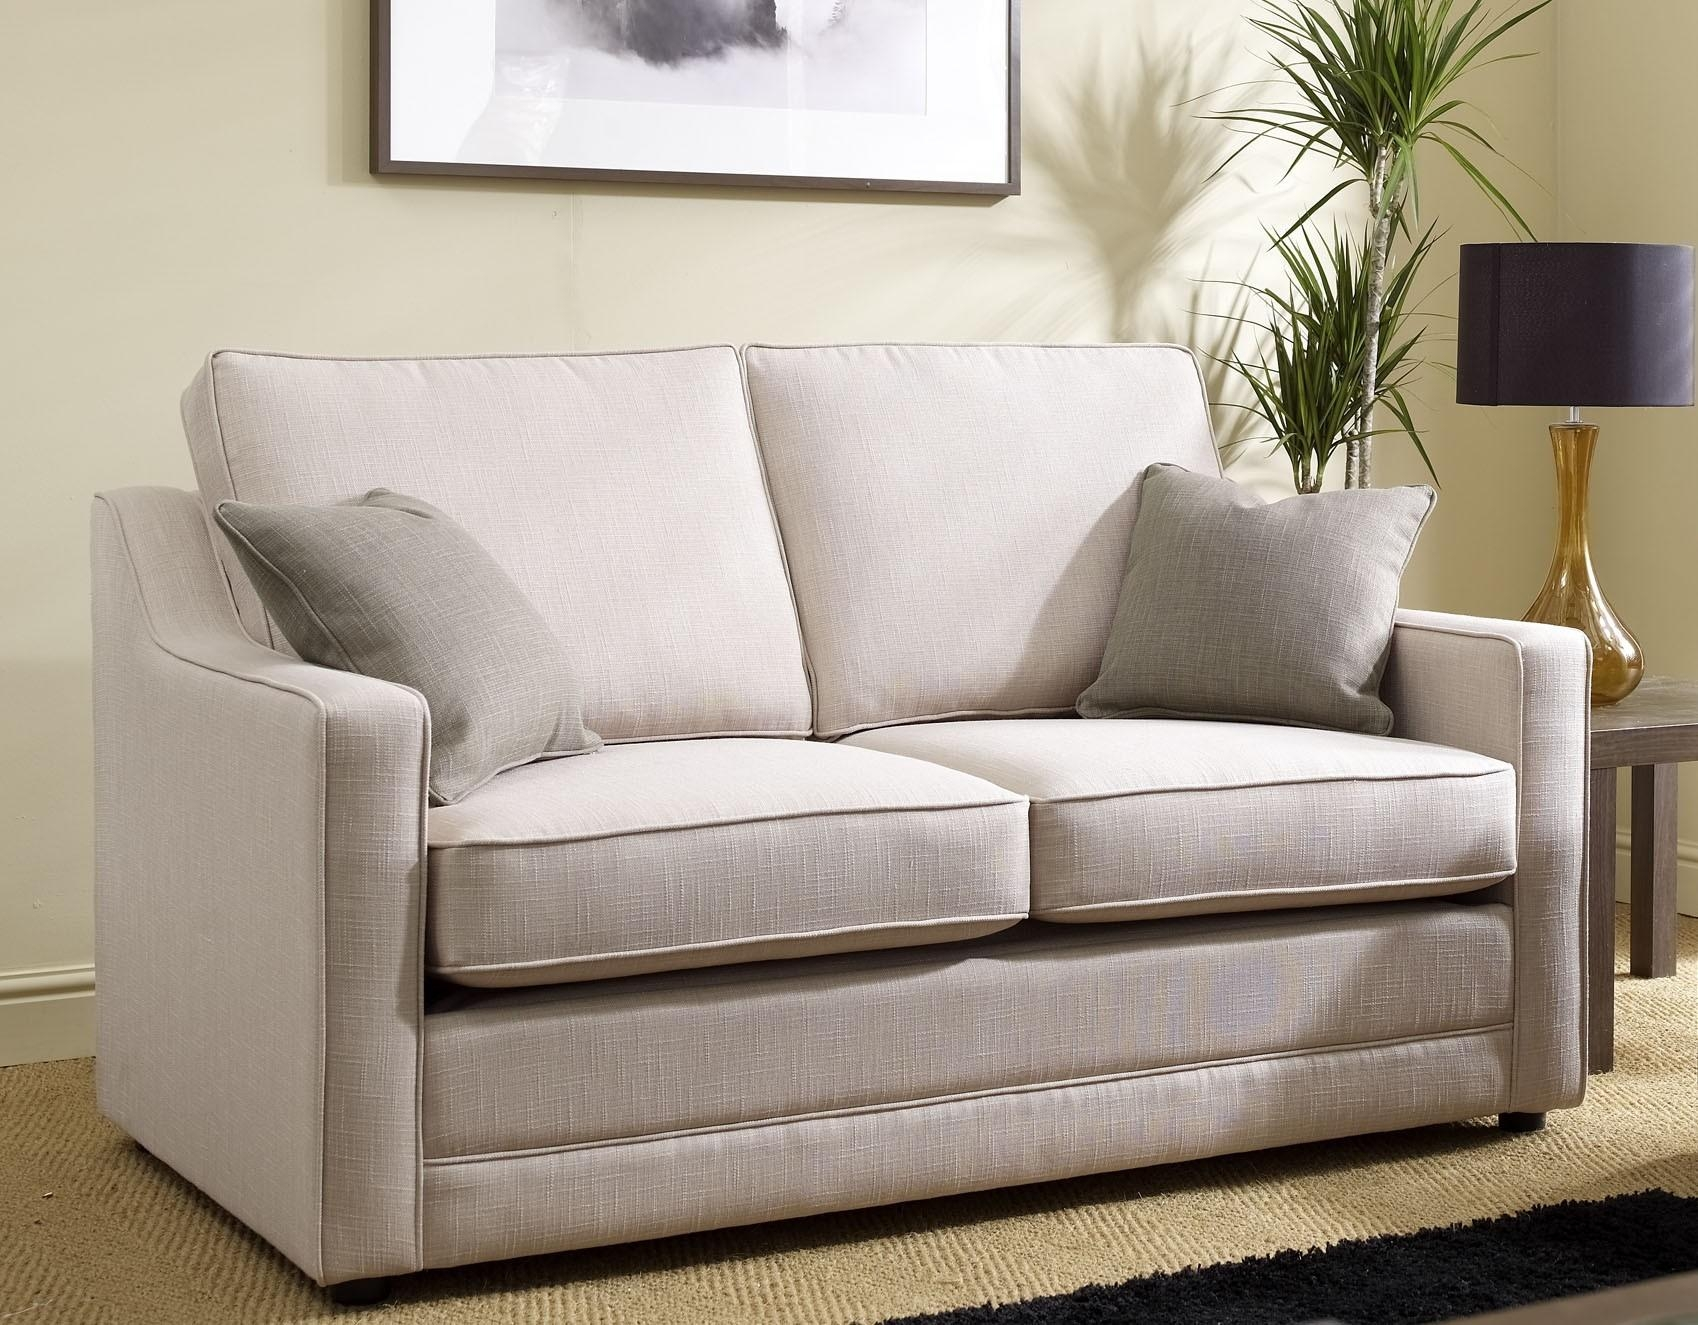 sectional sofa beds for small spaces donation value 20 best collection of mini sleepers ideas